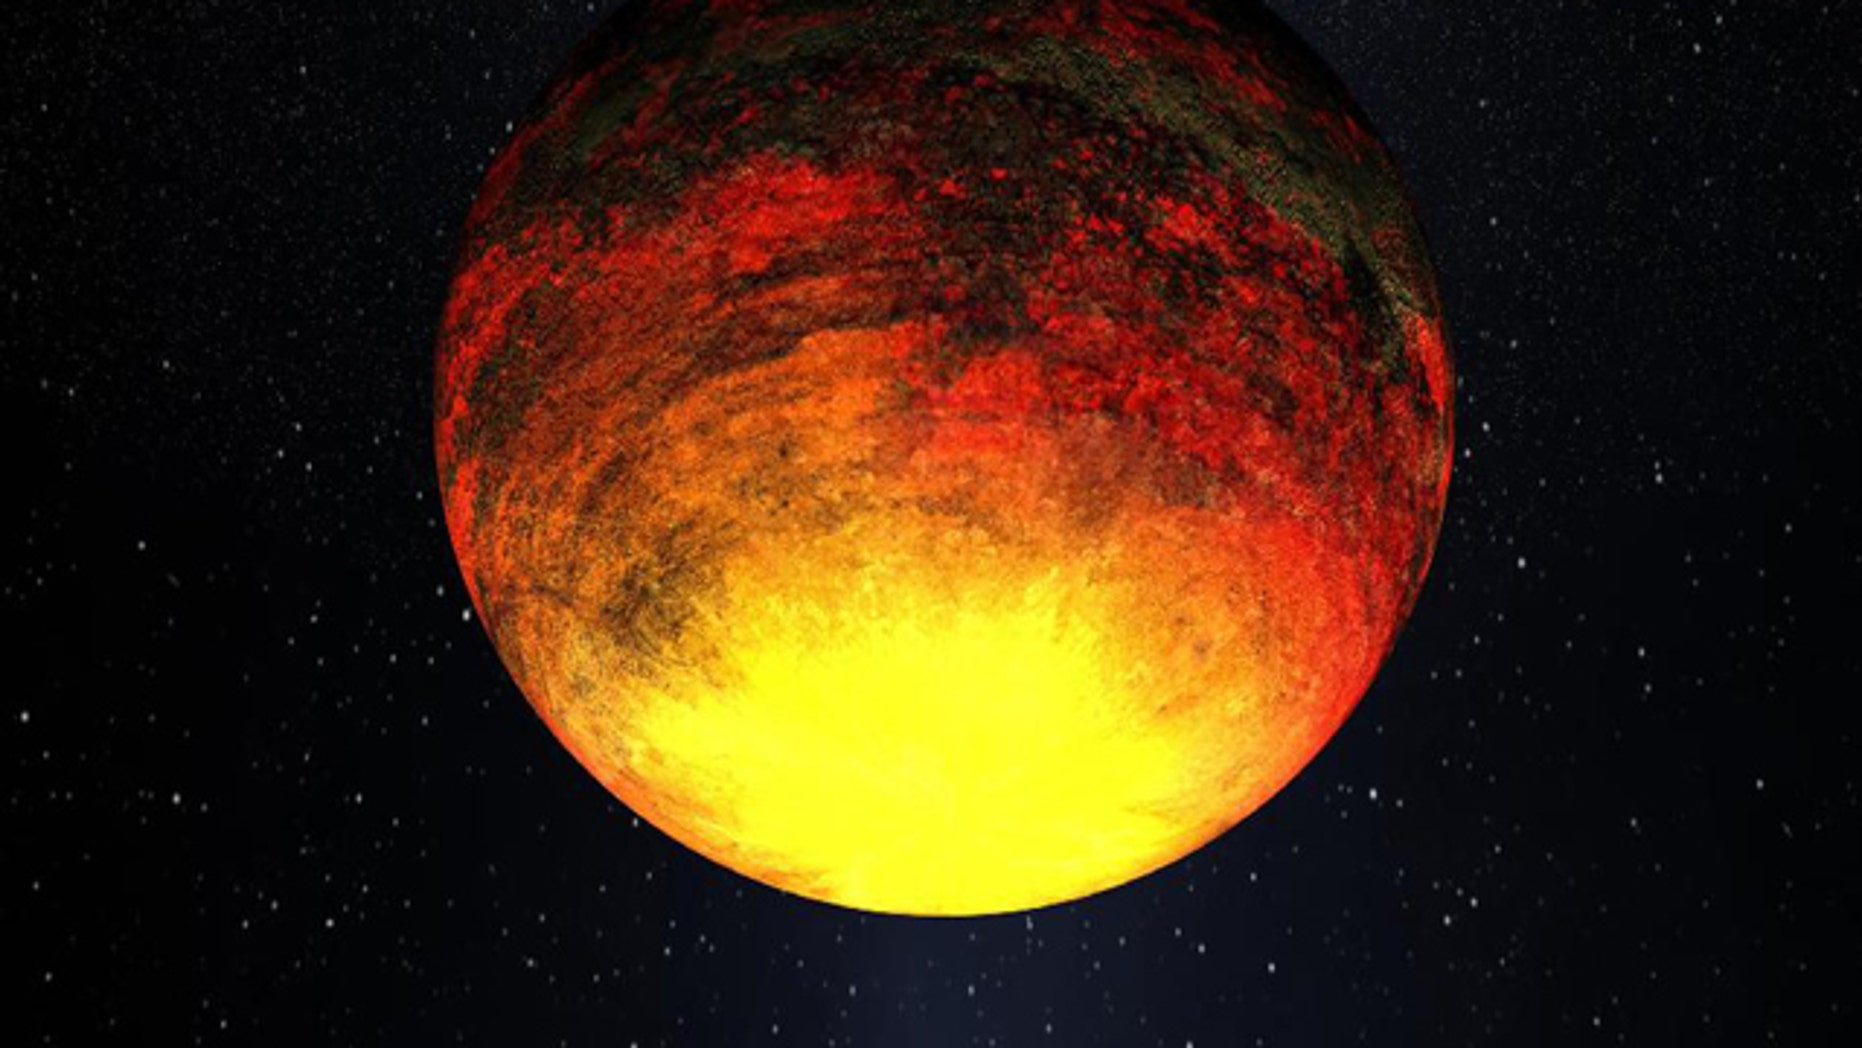 NASAs Kepler telescope is finding that relatively smaller planets -- still larger than Earth, but tinier than Jupiter -- are proving more common outside our solar system than once thought. This drawing is of one of the smallest planets that Kepler has found, a rocky planet called Kepler-10b, that measures 1.4 times the size of Earth and where the temperature is more than 2,500 degrees Fahrenheit.